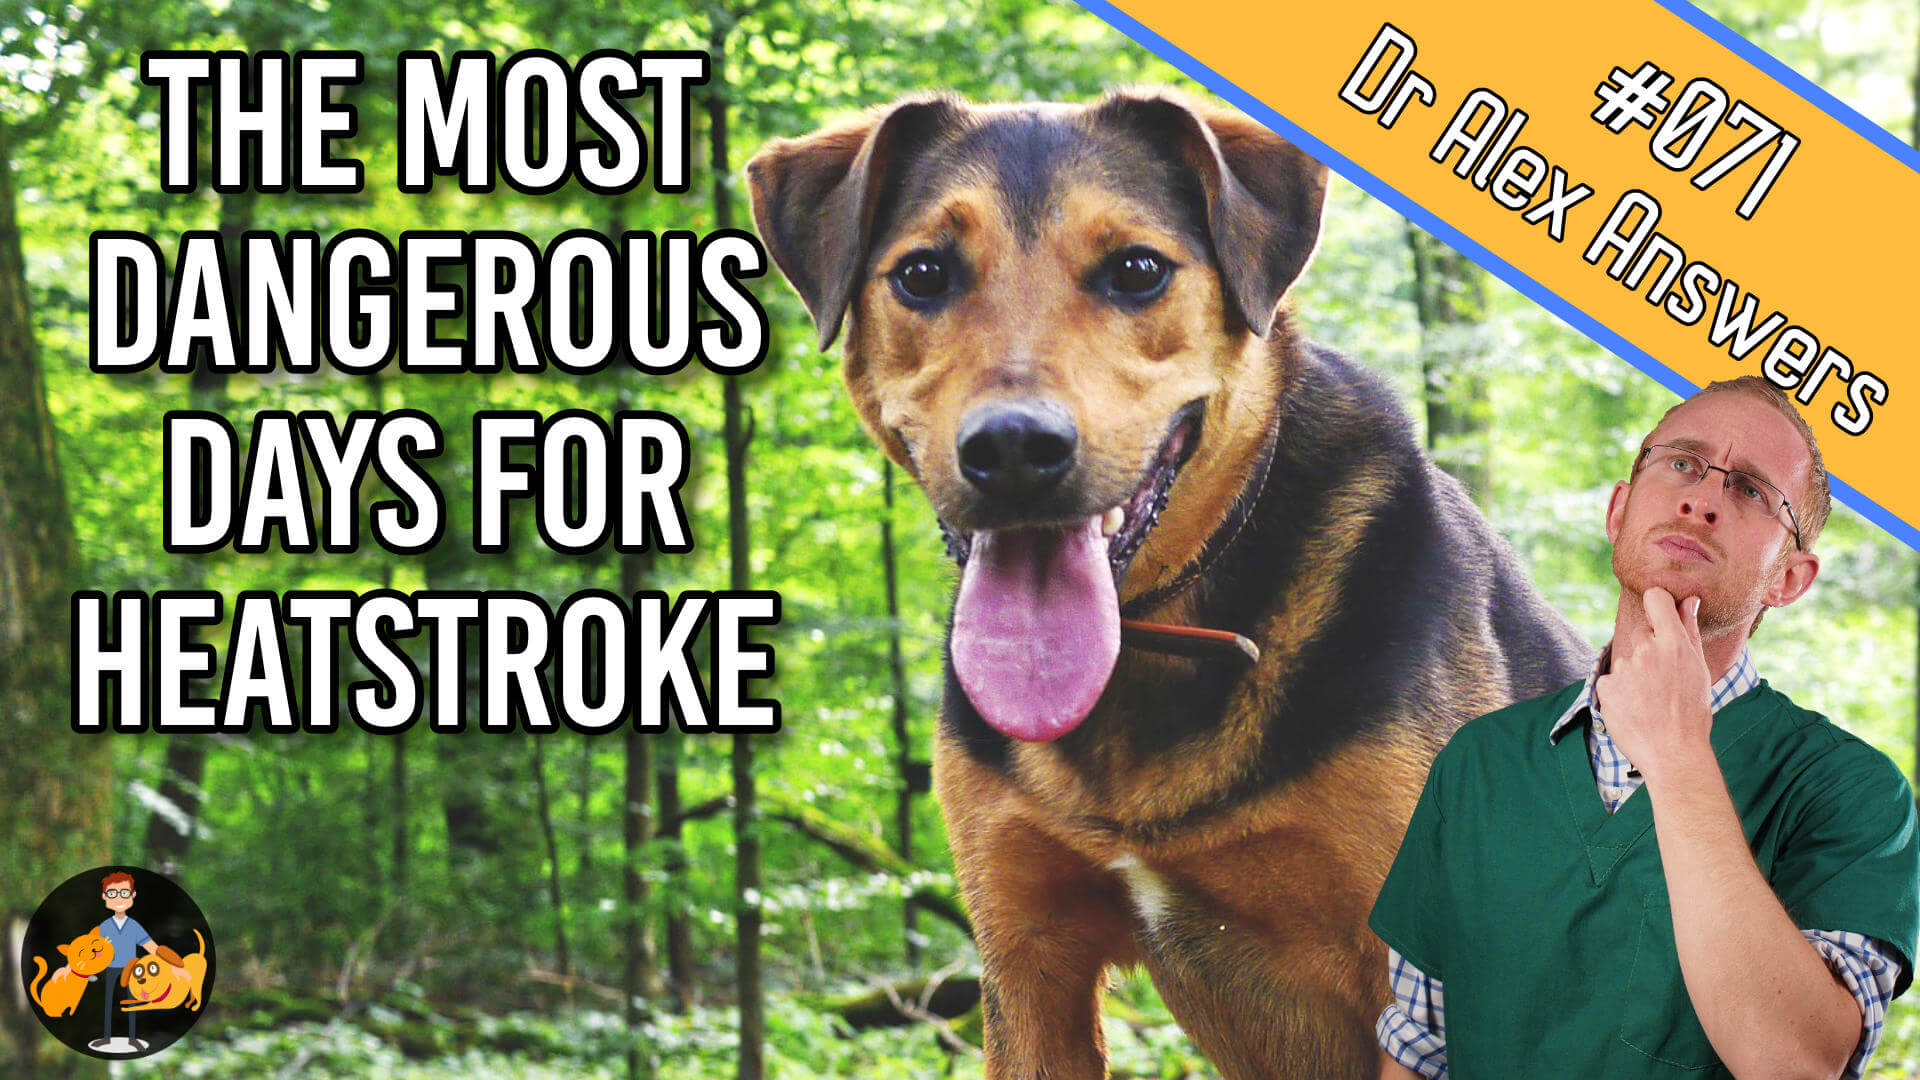 the most dangerous days for heatstroke with a hot panting dog